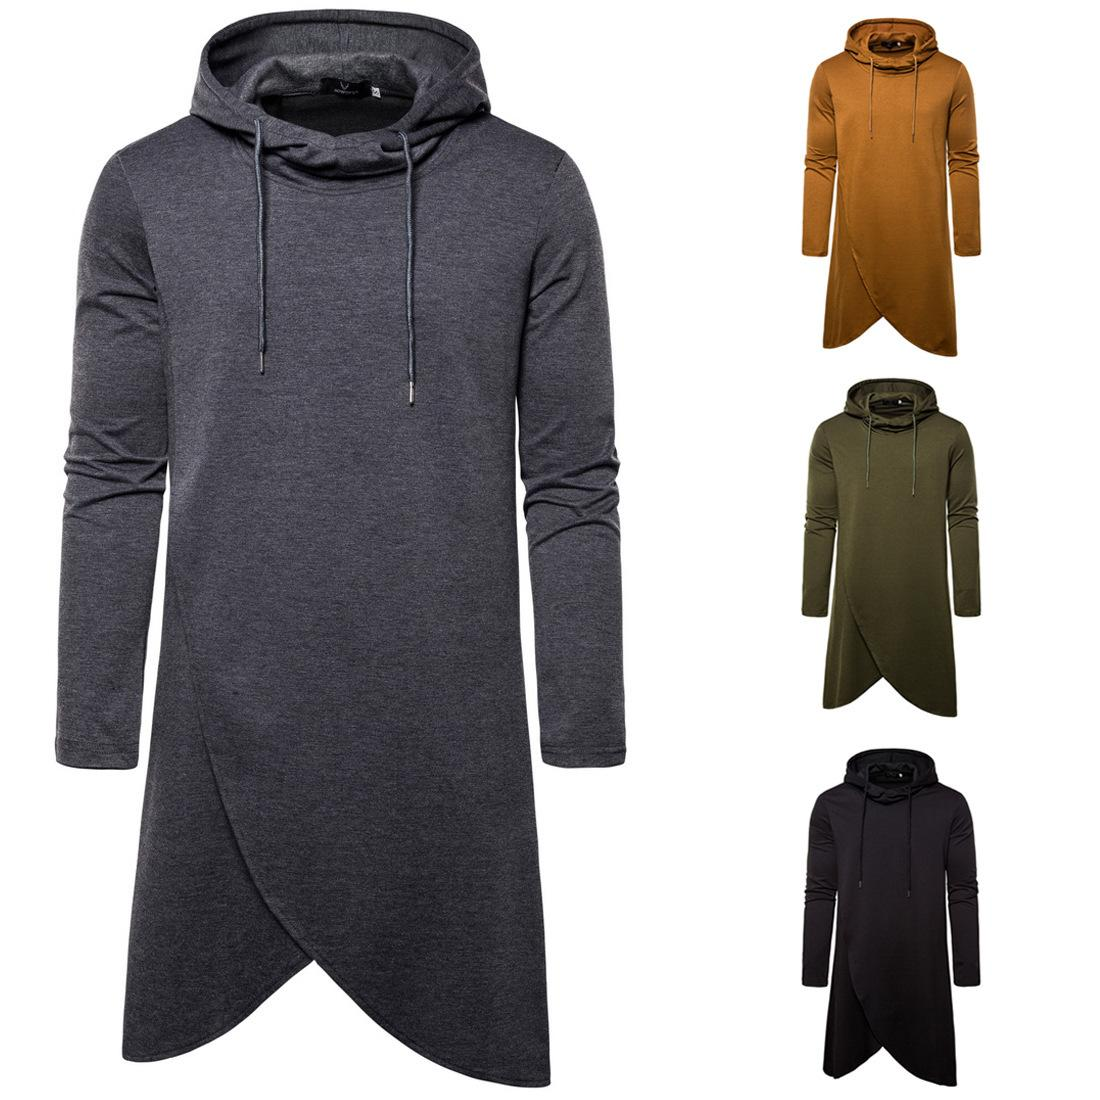 Men irregular hooded pullover sweater Men's Coat Long hooded Sleeve Solid Color Casual fashion sweater Men Tops